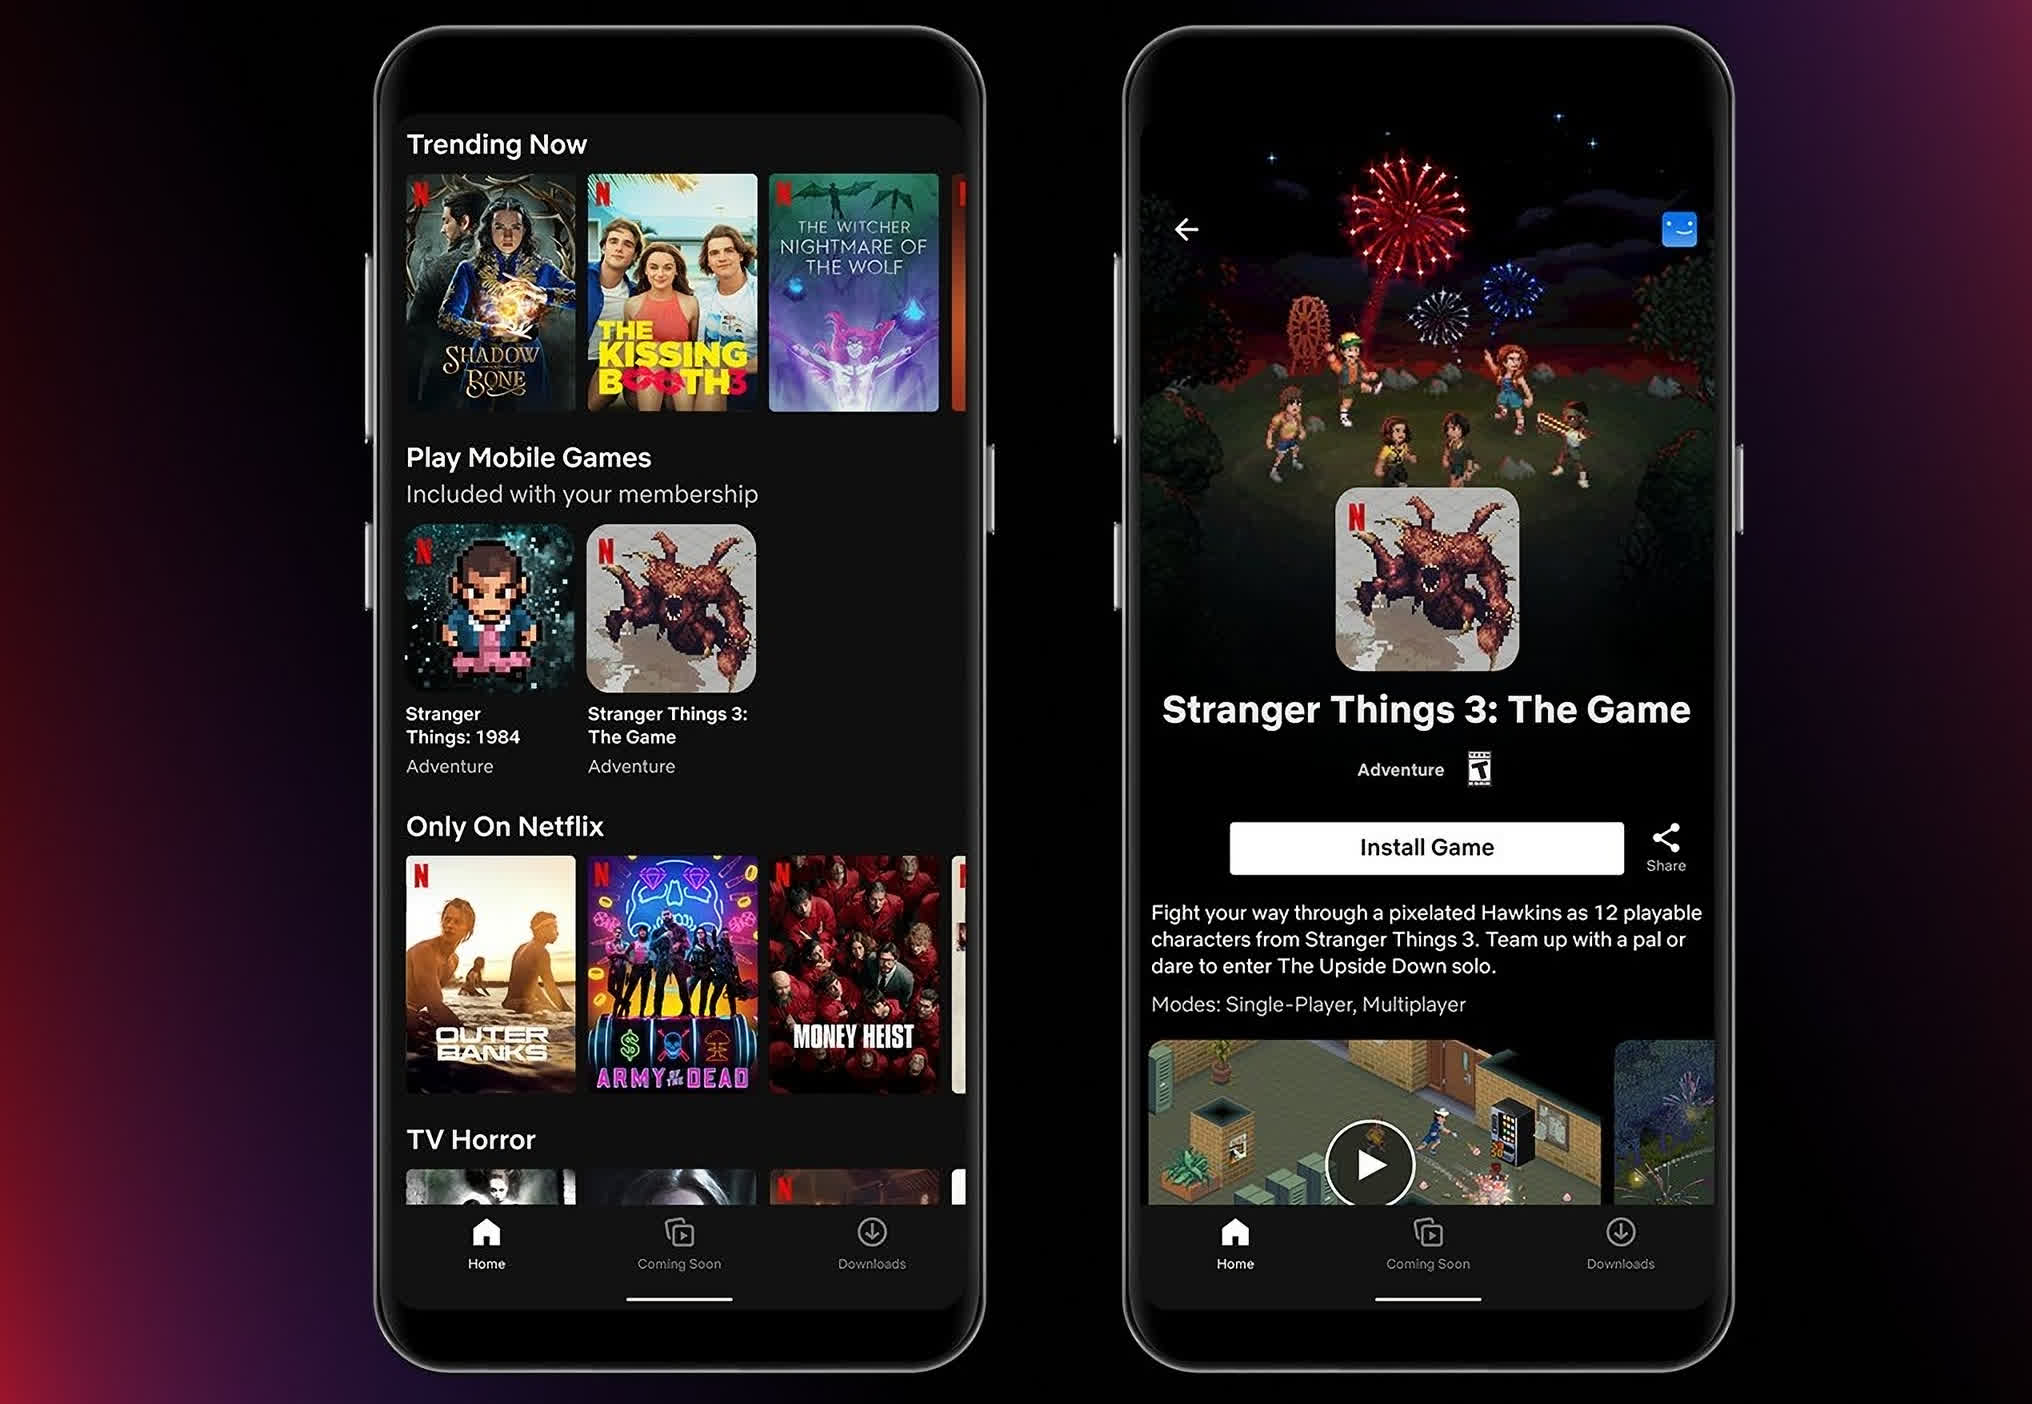 Netflix gaming kicks off in Android mobile app... if you're in Poland